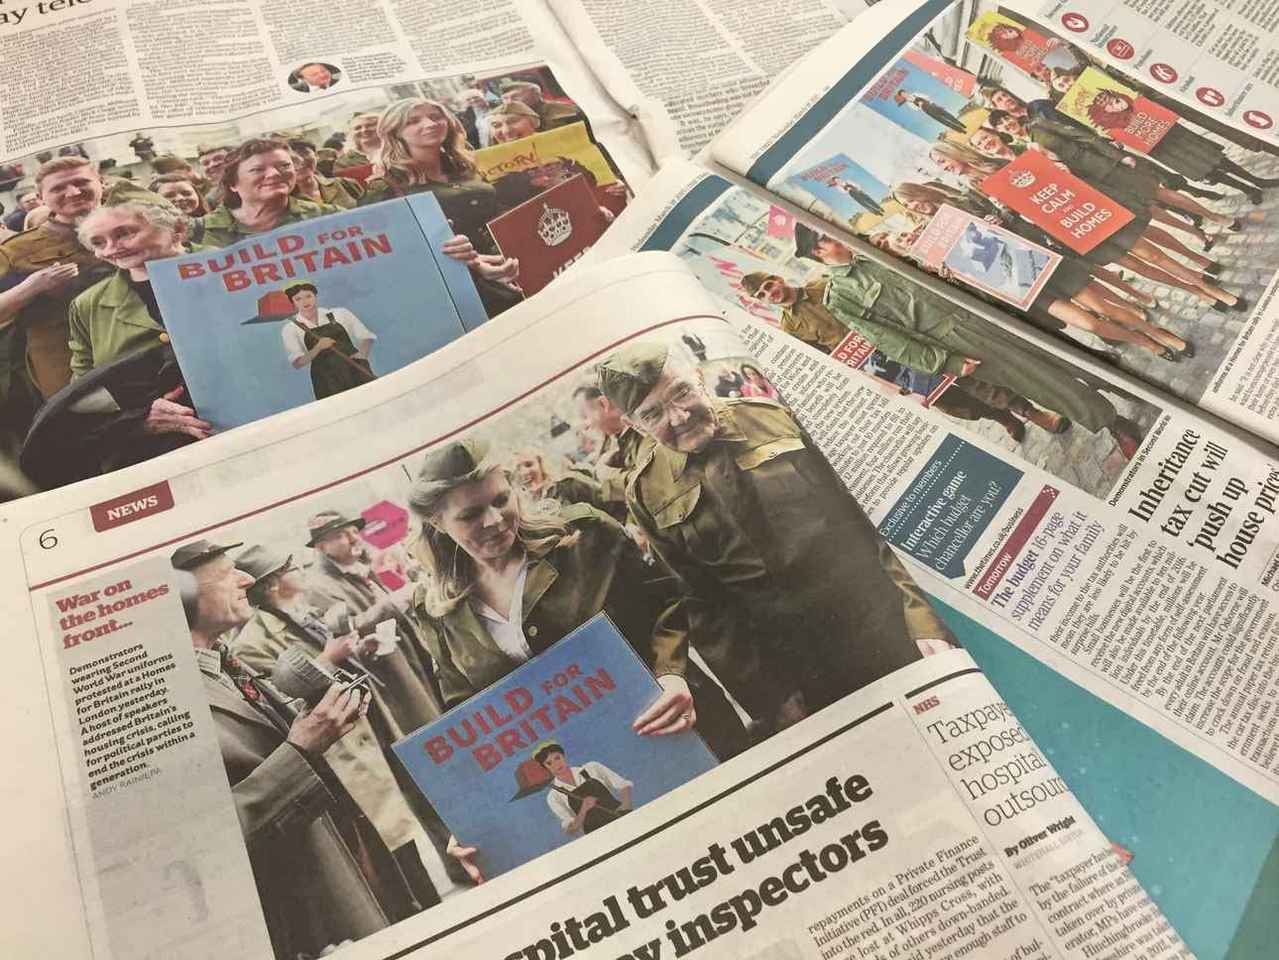 Newspapers open to stories featuring photographs of us in costume